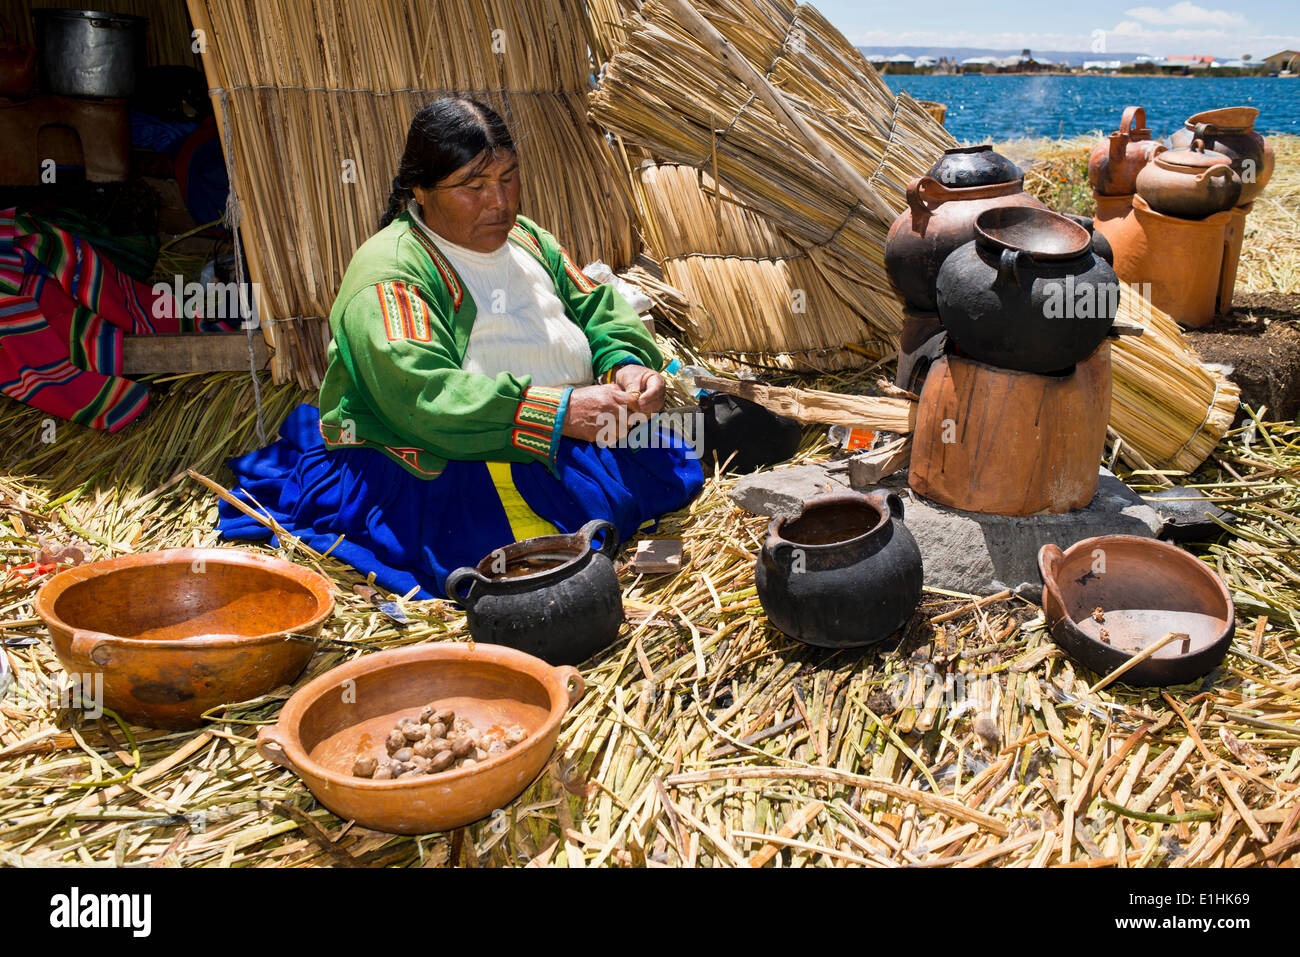 An elderly woman of the Uro Indians wearing typical attire, sitting in front of a reed hut with clay bowls and pots while - Stock Image